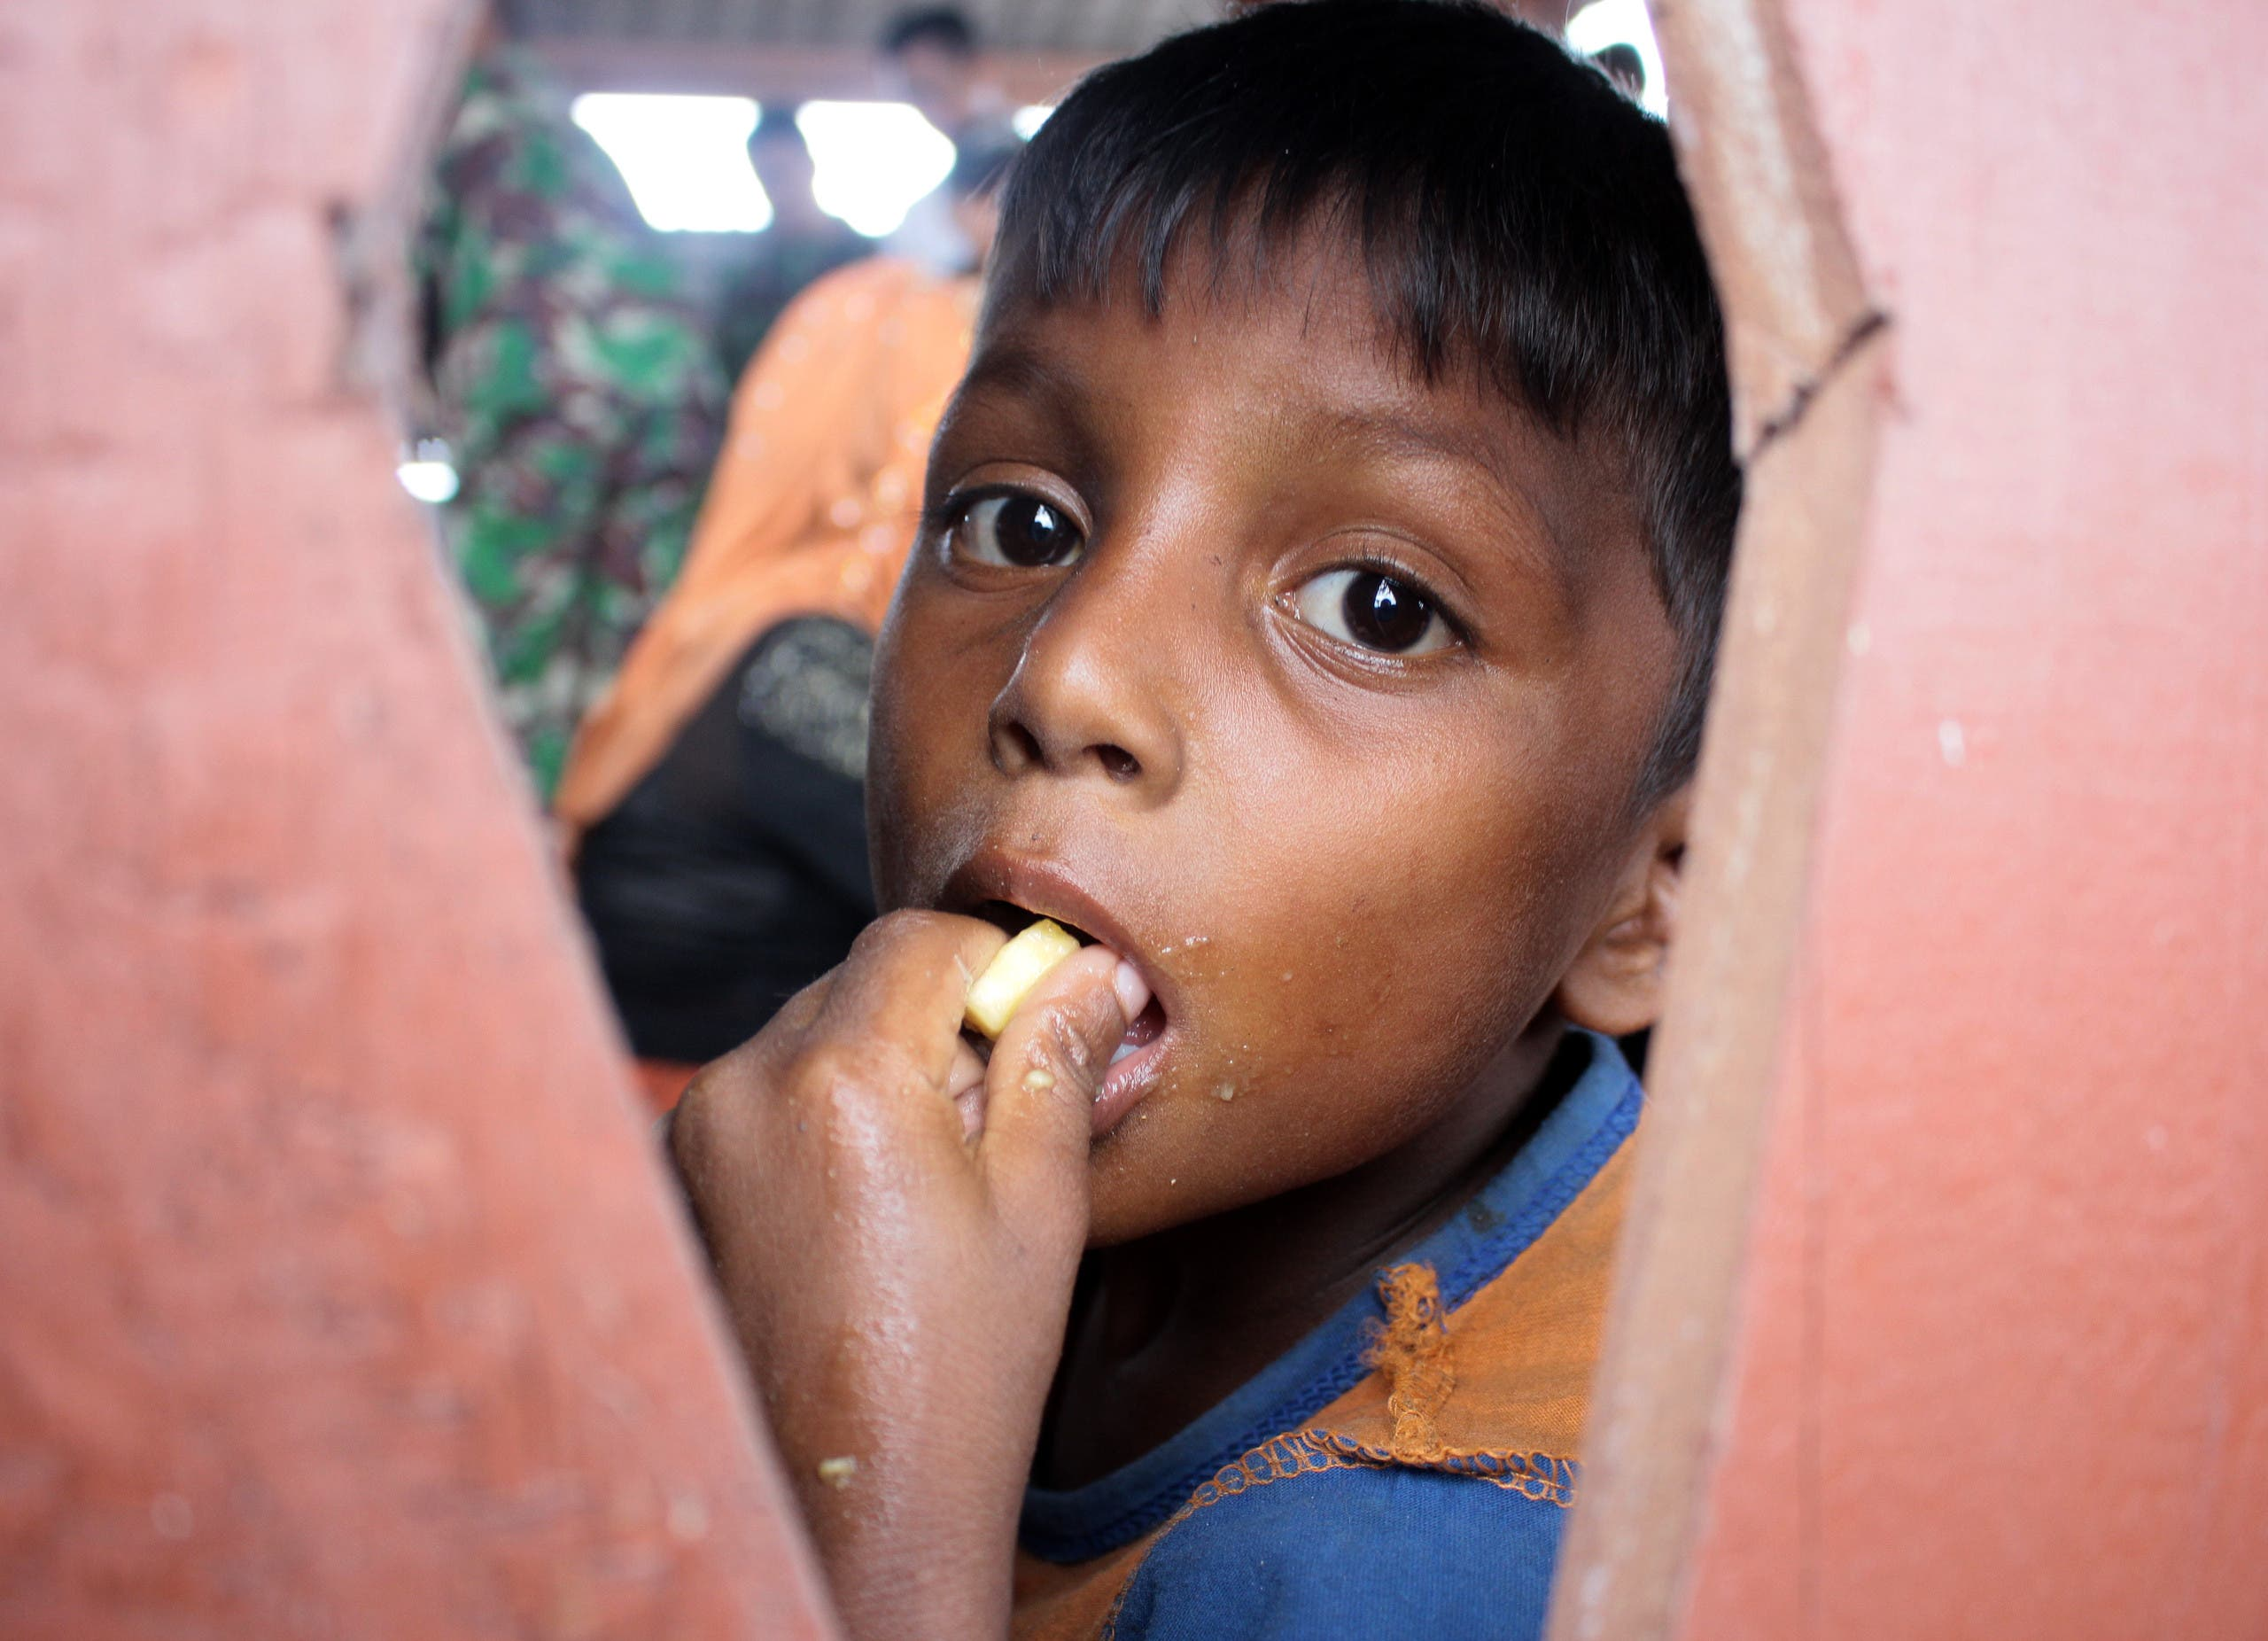 A Rohingya boy eats in a temporary shelter after he and a group of refugees landed in Aceh province on Sumatra island on April 20, 2018, just weeks after dozens of the persecuted Muslim minority from Myanmar came ashore in neighbouring Malaysia. About 80 Rohingya in a wooden boat arrived in Indonesia on April 20, officials said, the latest batch of the vulnerable minority to come ashore in the world's biggest Muslim majority nation. Amanda JUFRIAN / AFP